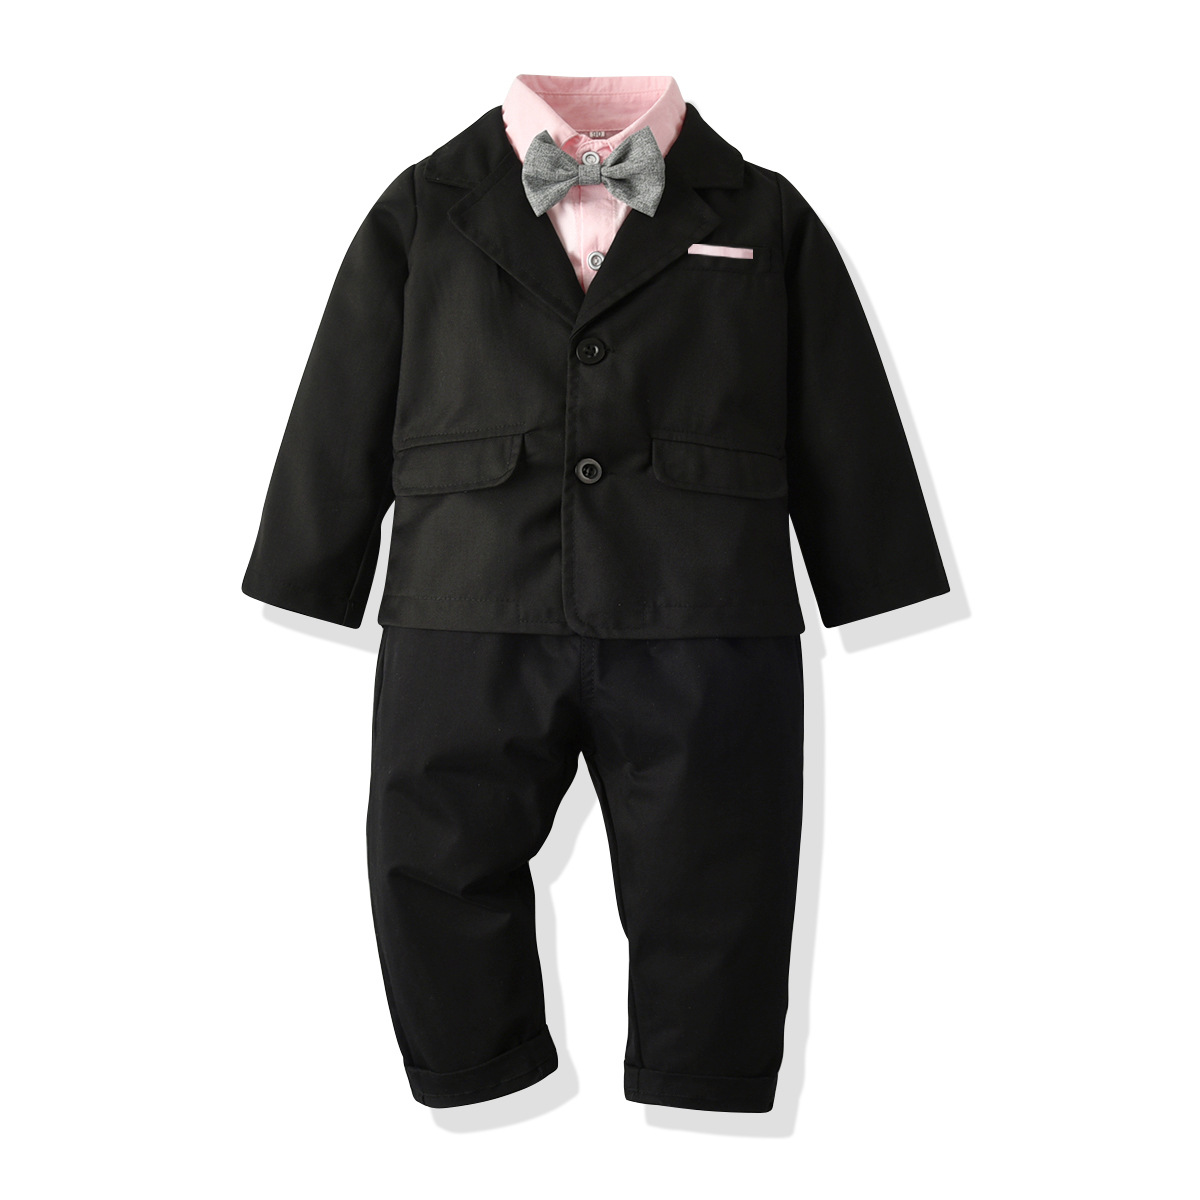 5 Pieces Sets Boy Child Costume for Baby Boys Child for Wedding Kid Blazers Shirt Shorts Suit Formal Party Wear Children Clothes